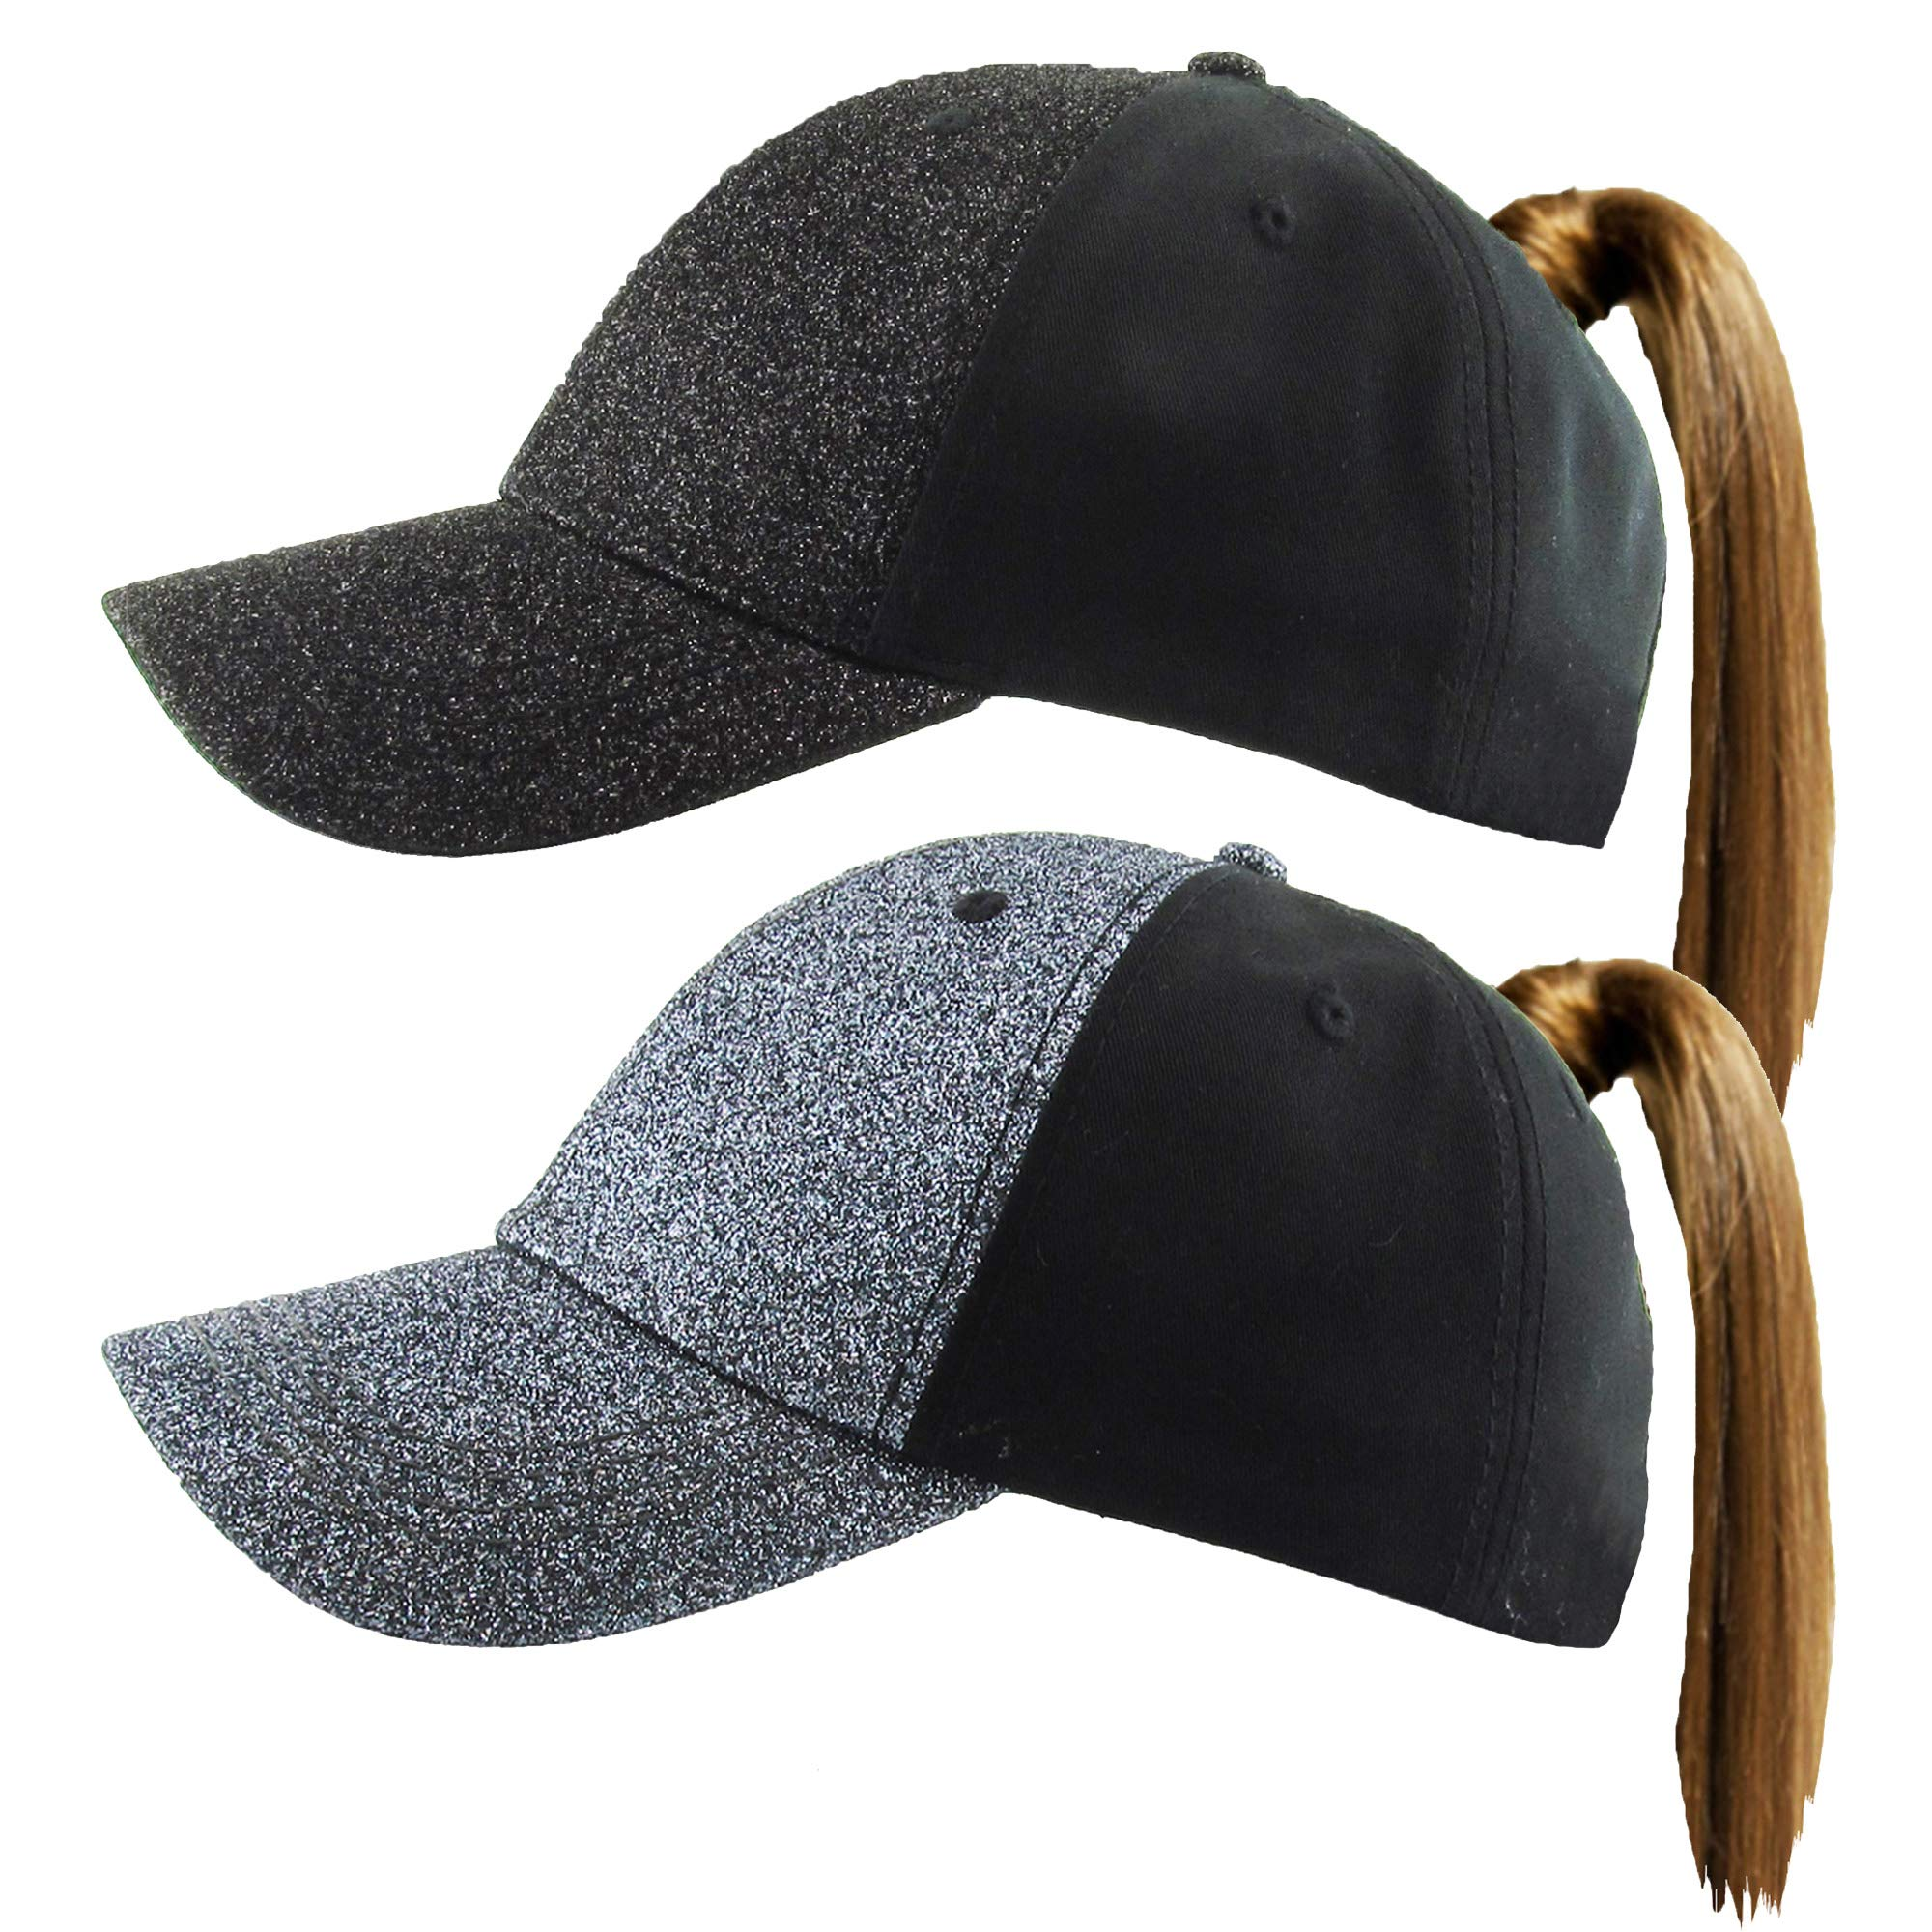 H-216-2-GS0670 GLITTER Ponycap 2-Pack: Solid Black & Charcoal